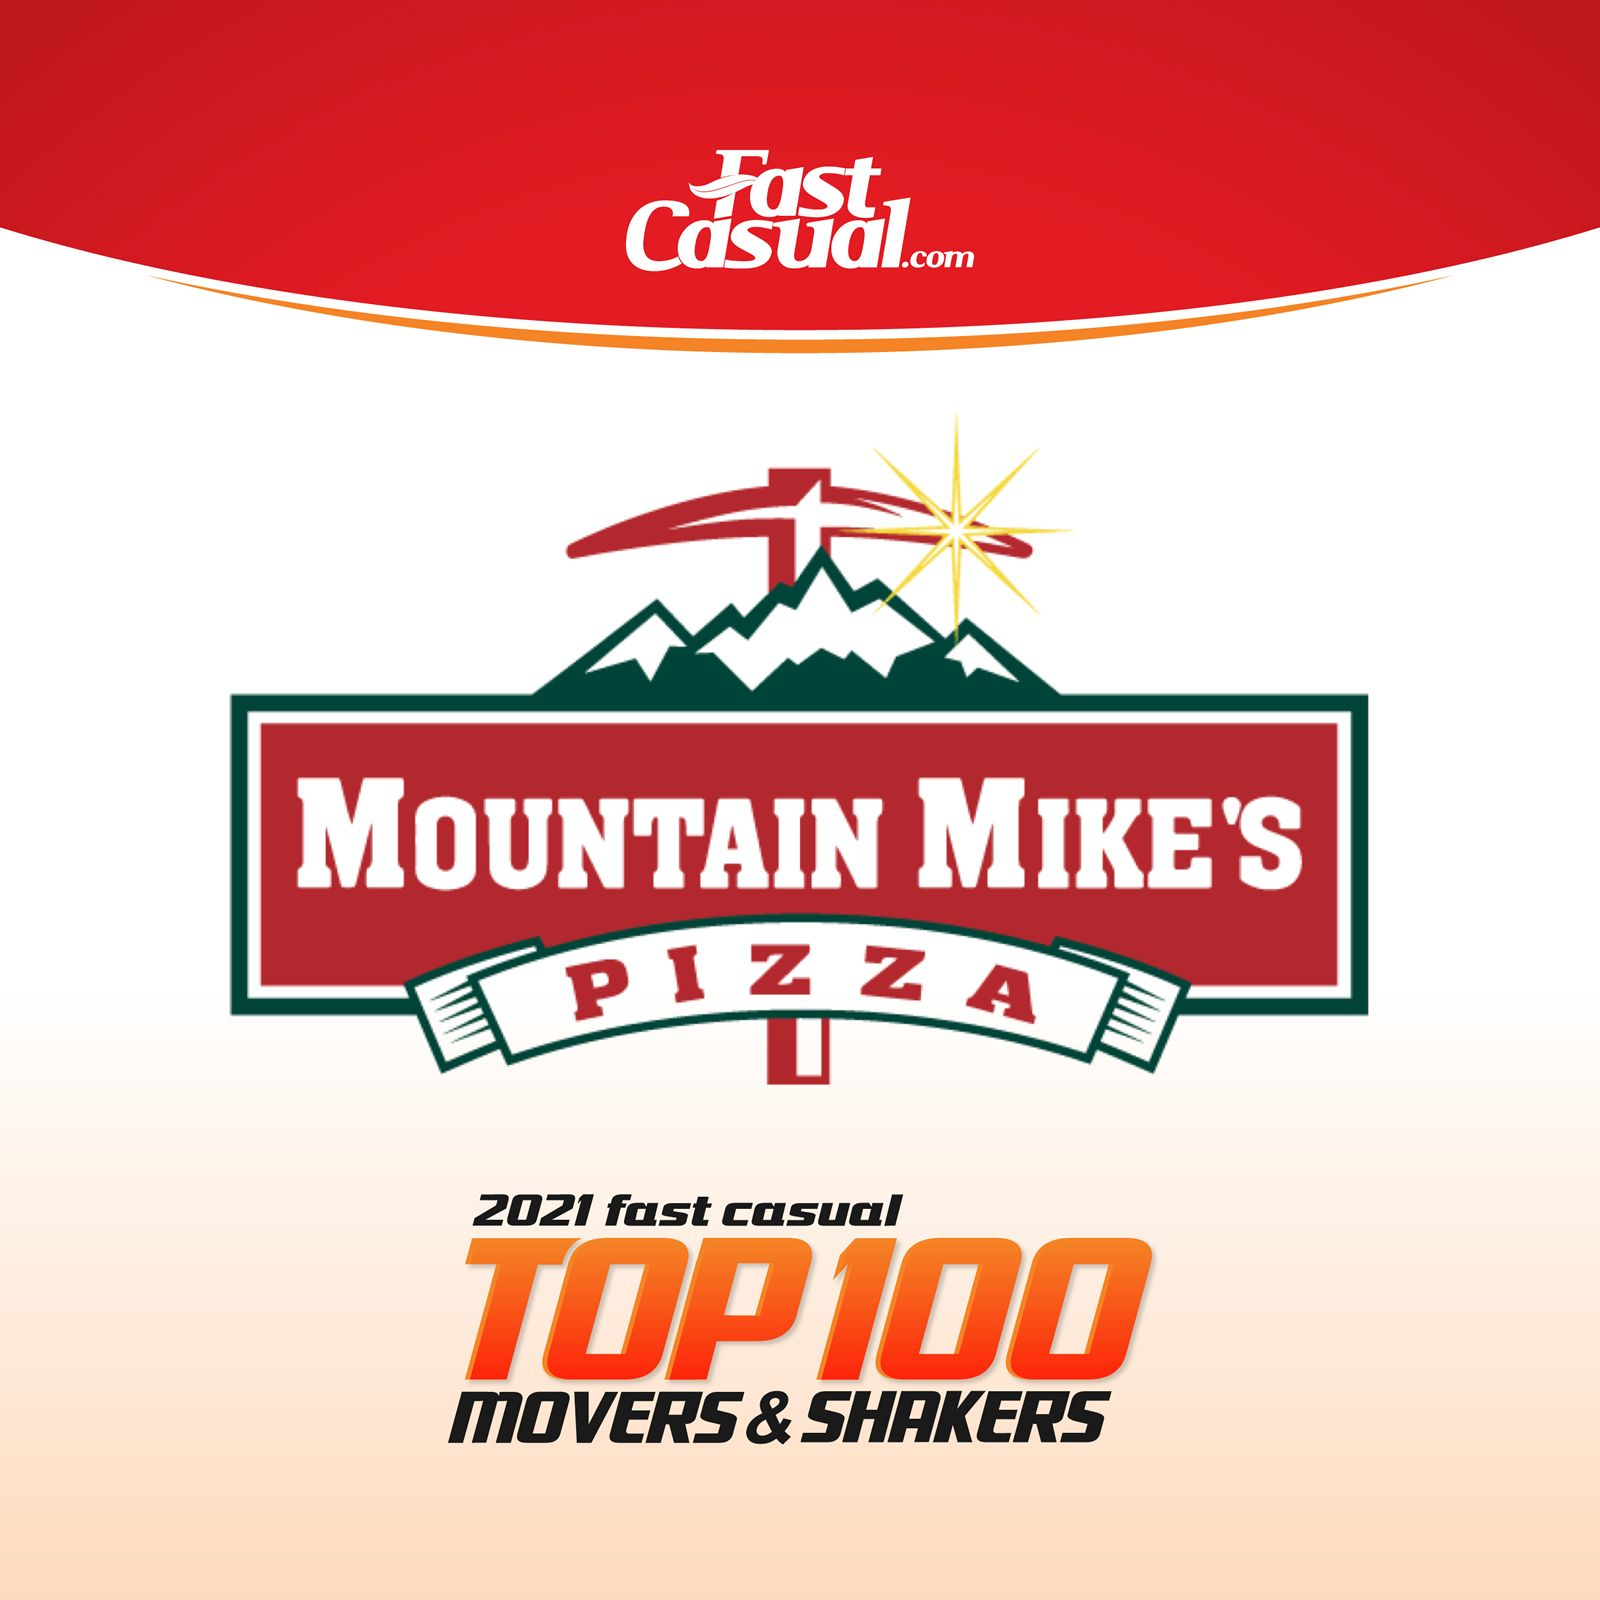 Mountain Mike's Pizza Debuts at #19 in Fast Casual's Top 100 Movers & Shakers